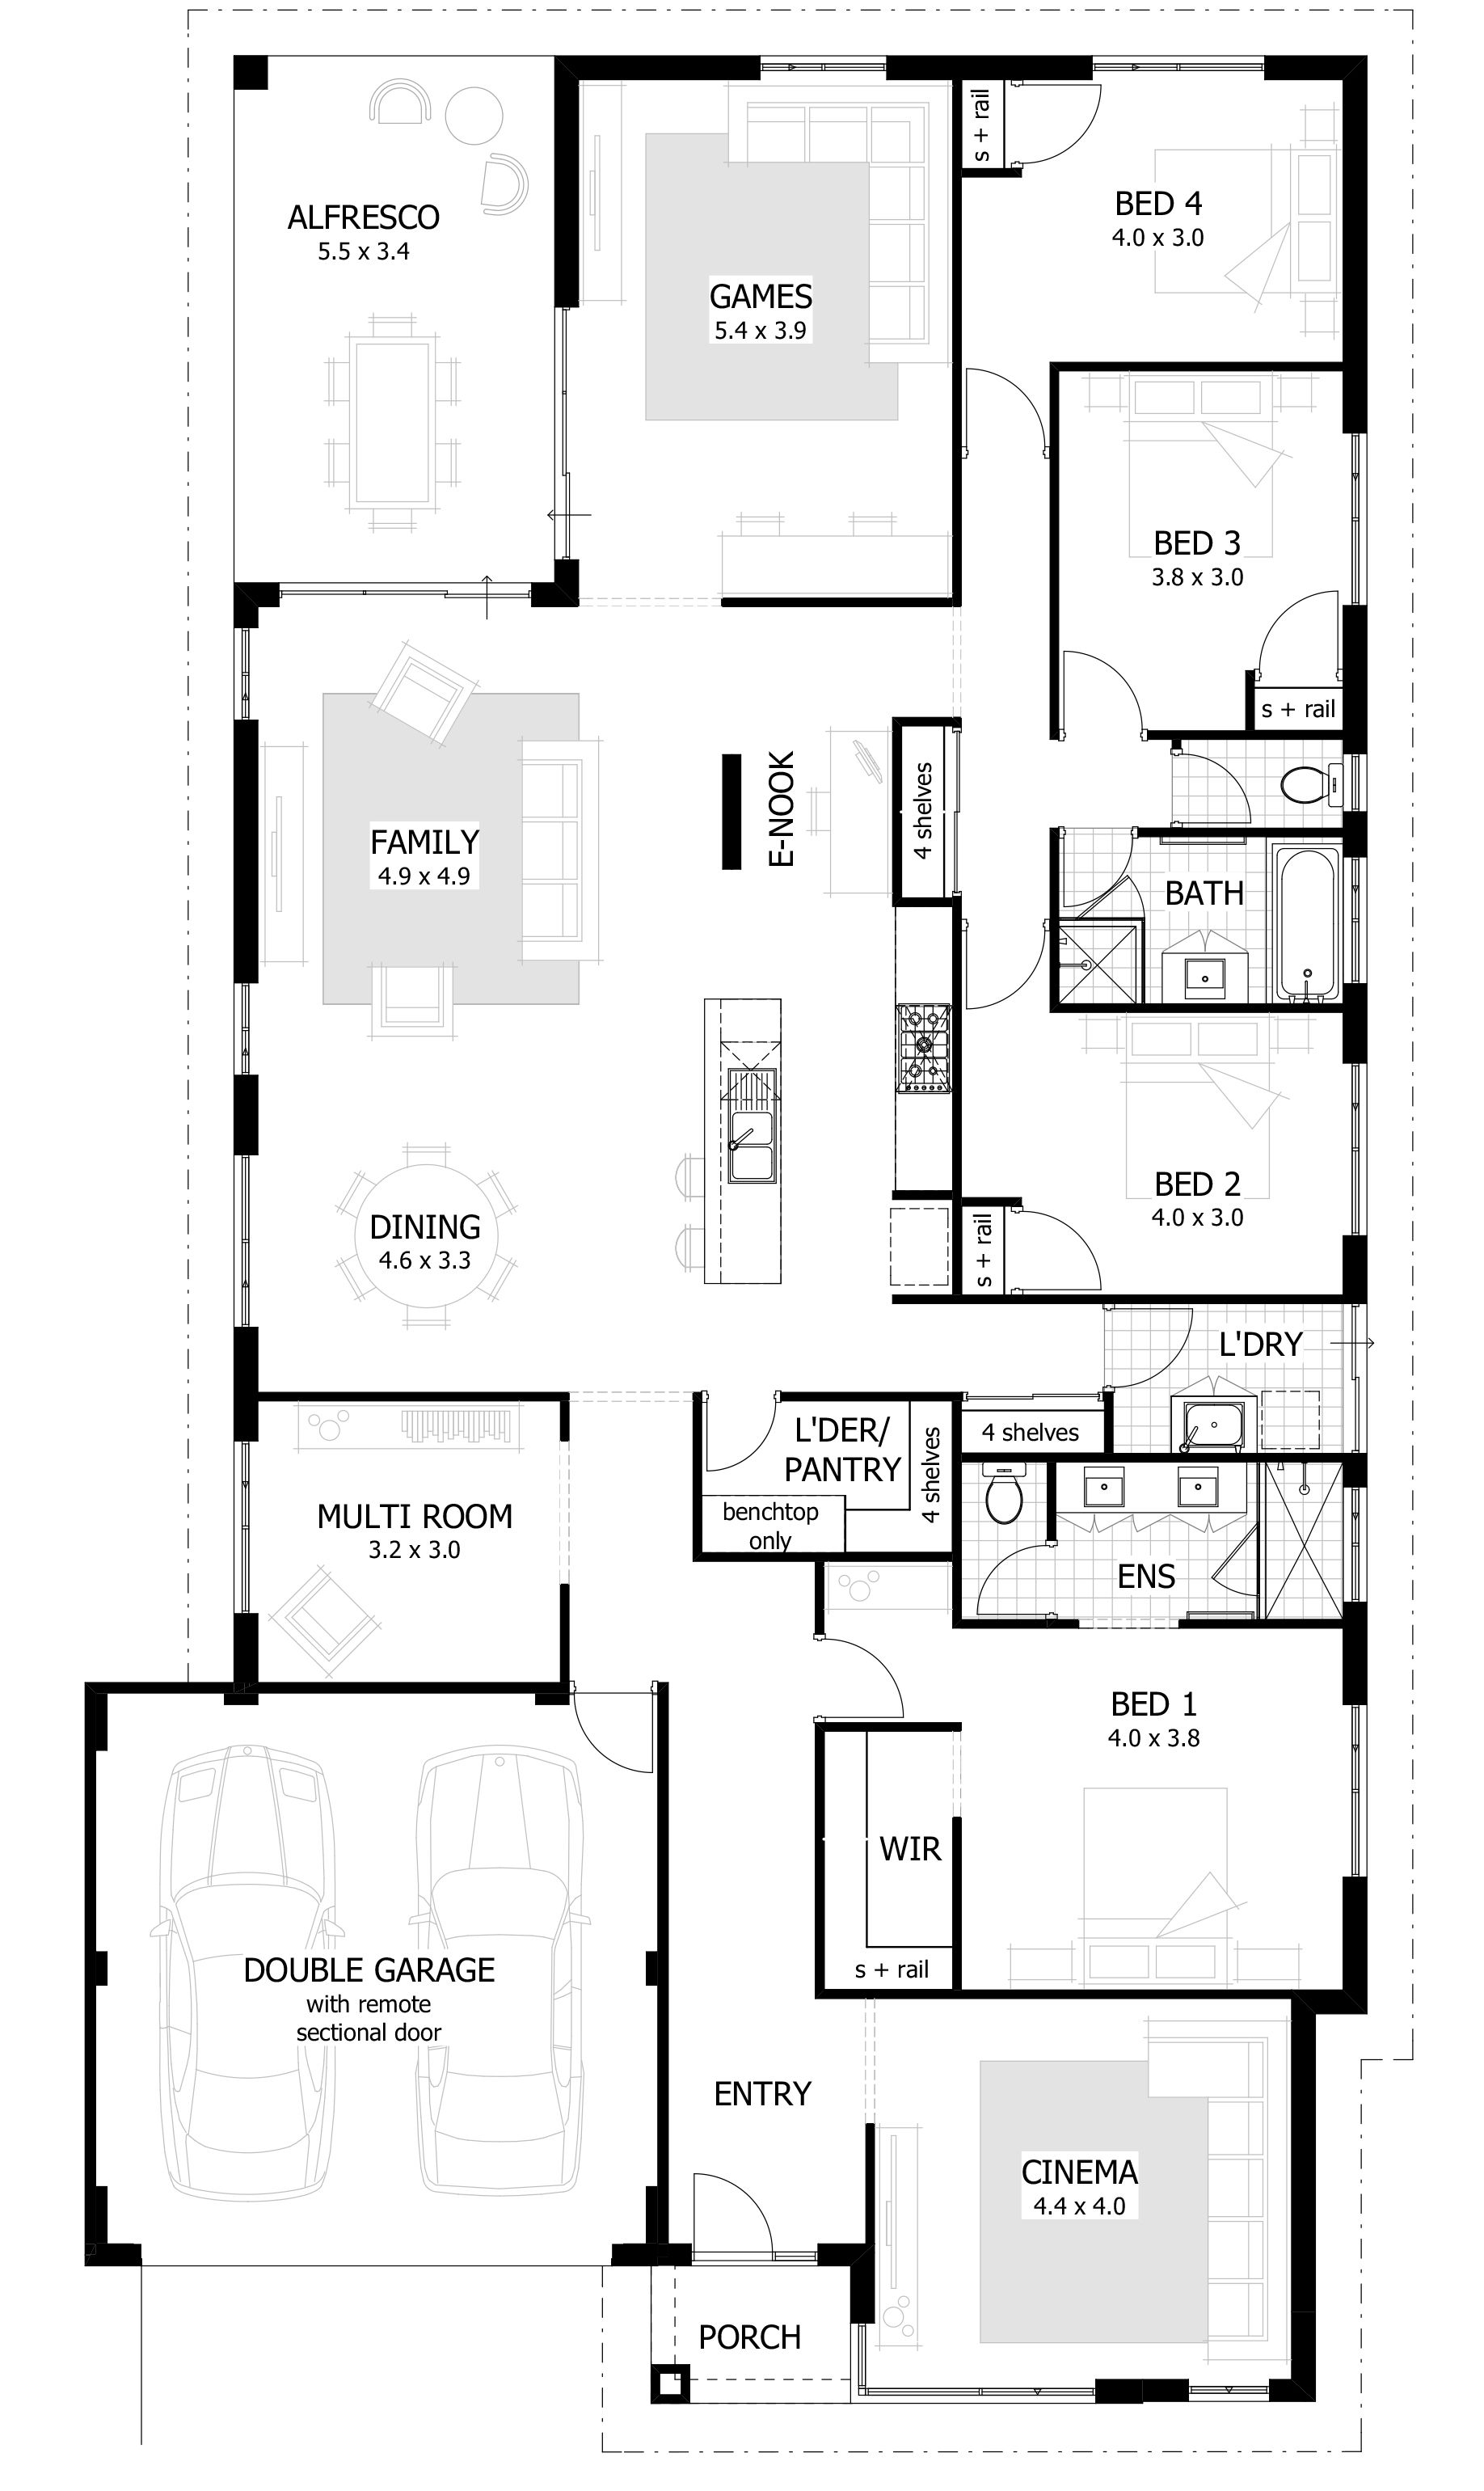 4 Bedroom House Plans Home Designs Narrow House Plans House Plans Australia Bedroom House Plans